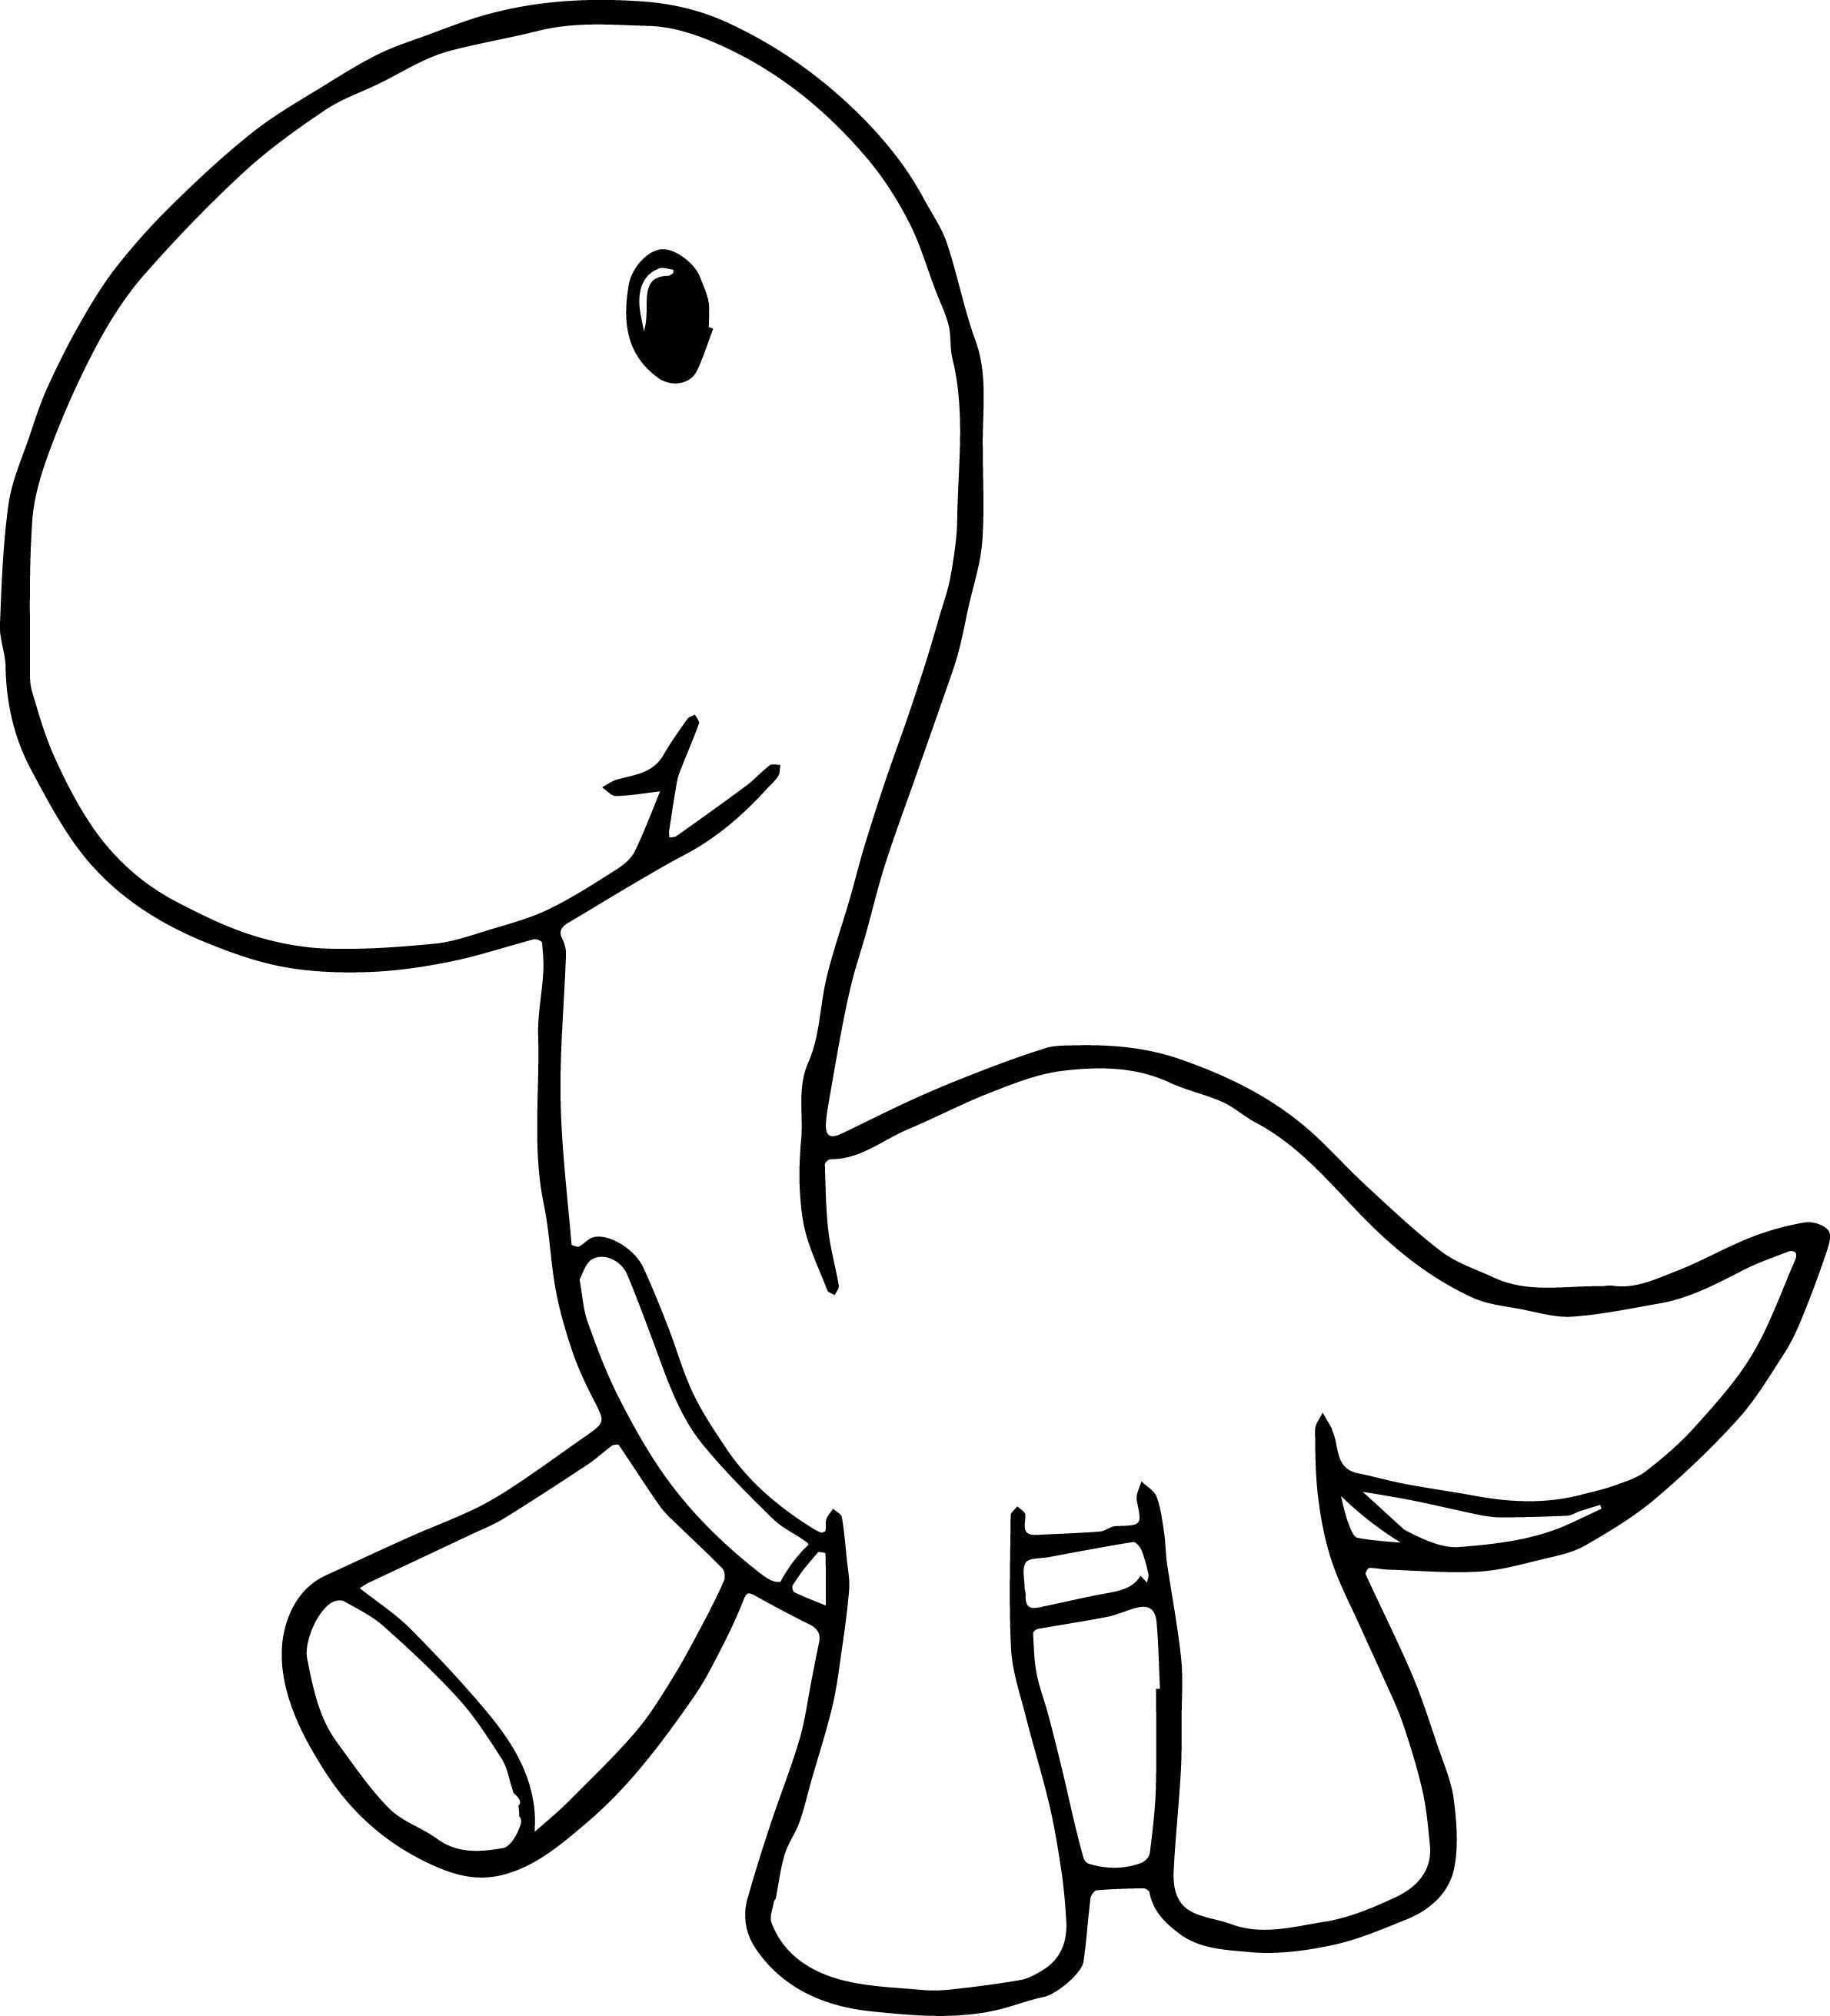 2380x2622 Coloring Pages Of Dinosaur Fossils Cartoon Real Pdf Scary Carmi